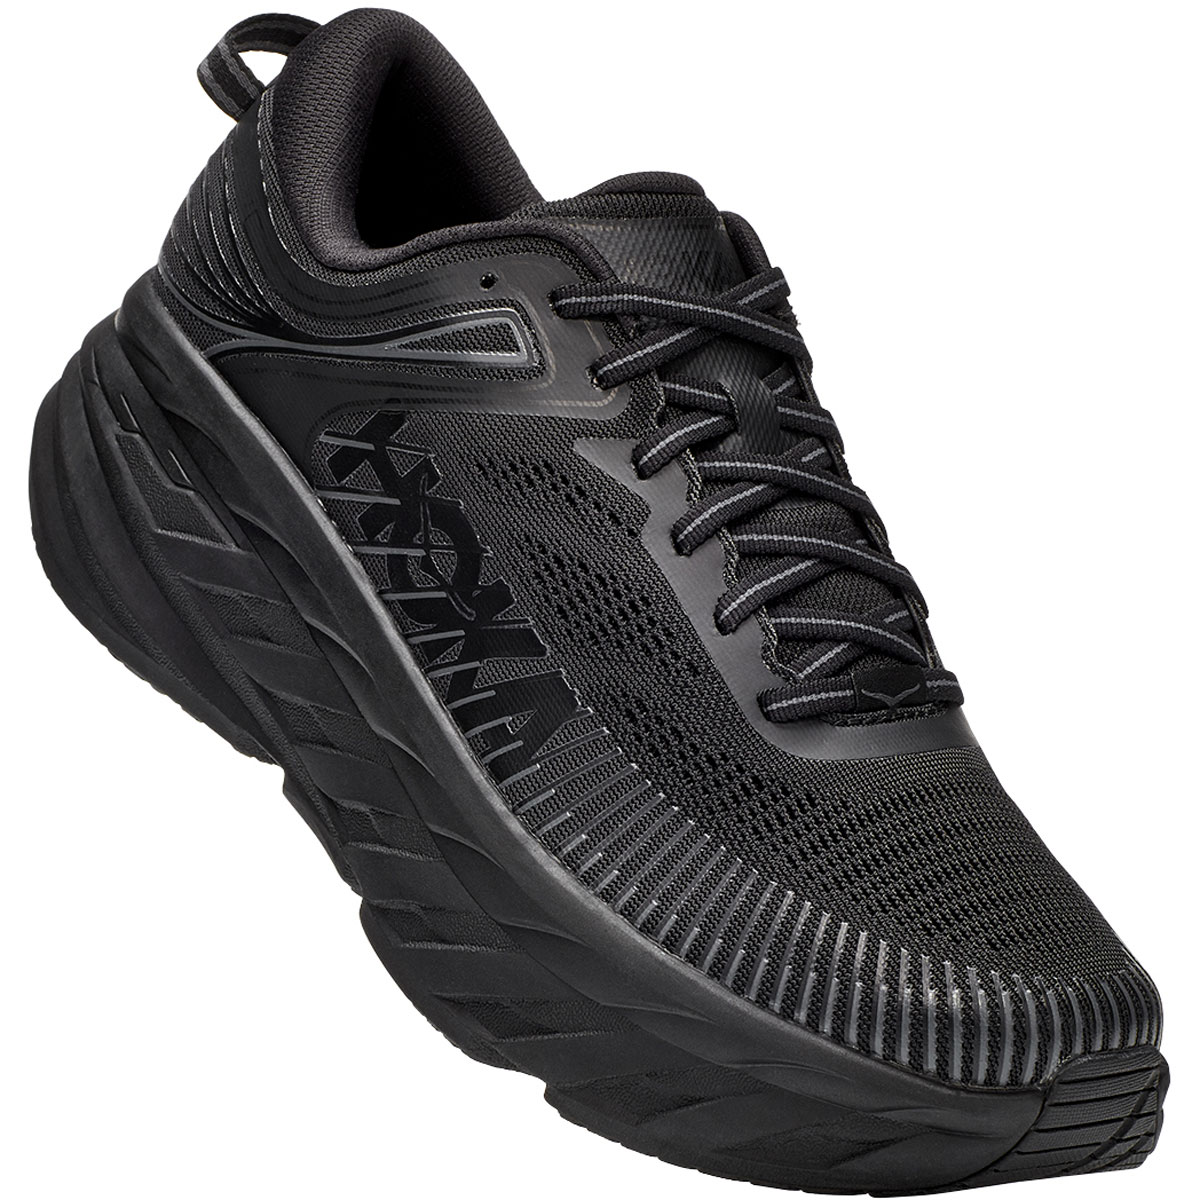 Men's Hoka One One Bondi 7 Running Shoe - Color: Black - Size: 7.5 - Width: Regular, Black, large, image 4